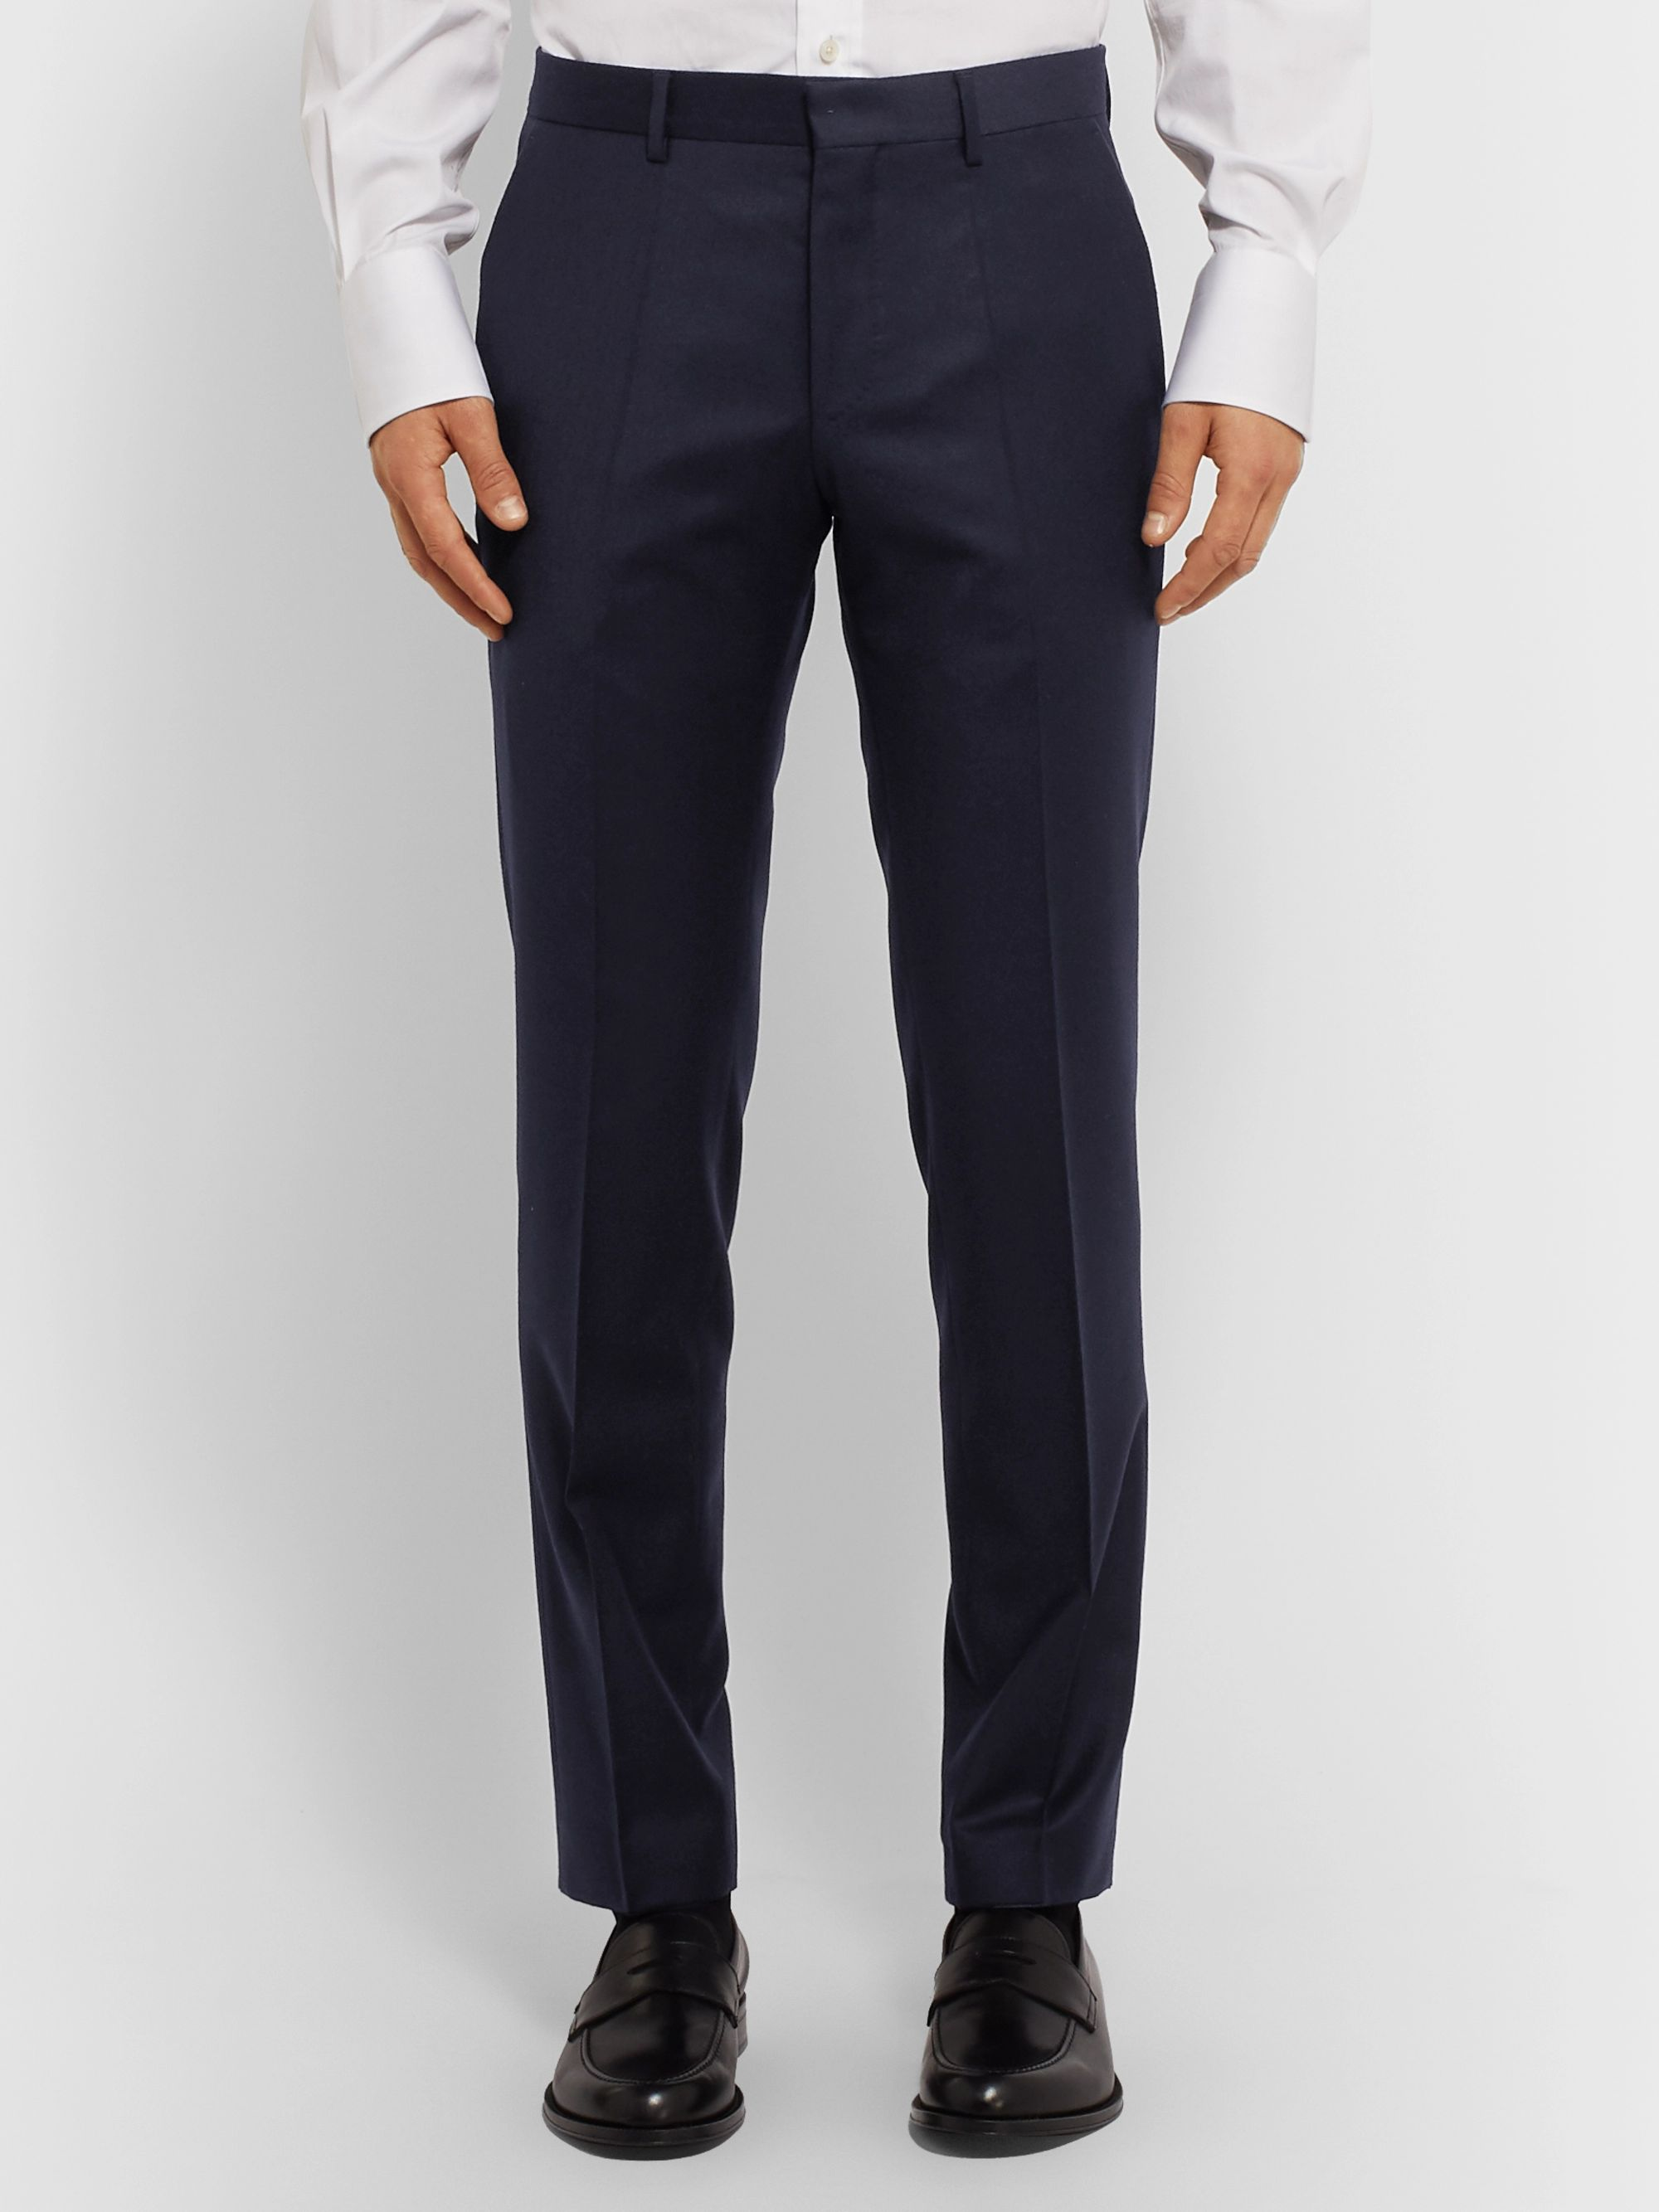 Hugo Boss Navy Slim-Fit Virgin Wool Suit Trousers